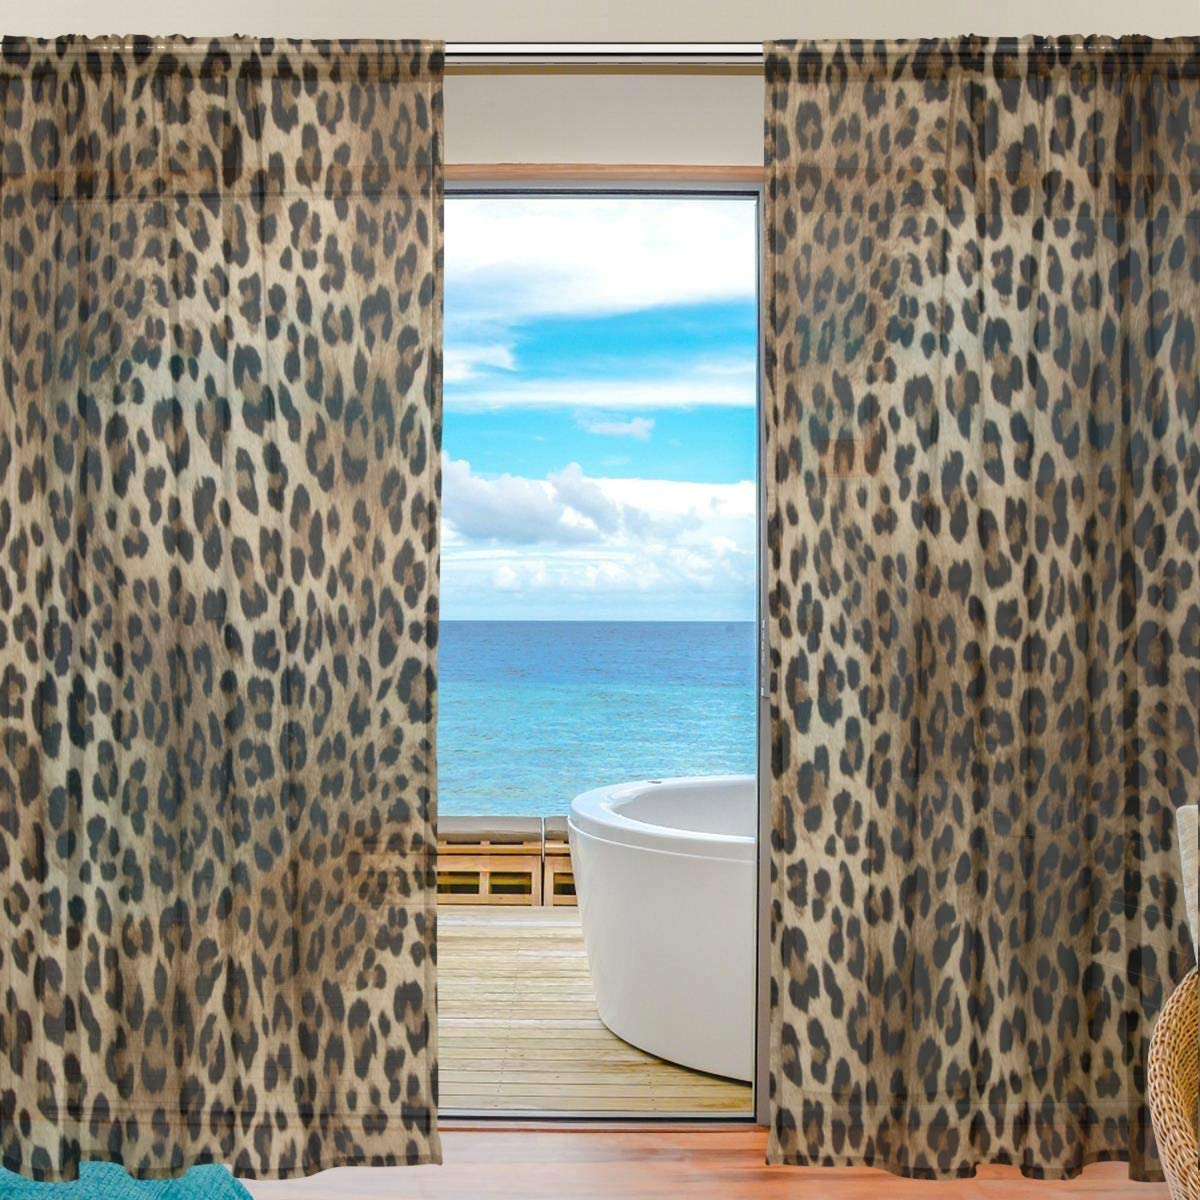 MAHU Sheer Curtains Animal Leopard Print Pattern Window Voile Curtain Drapes for Living Room Bedroom Kitchen Home Decor 55×78 inches, 2 Panels